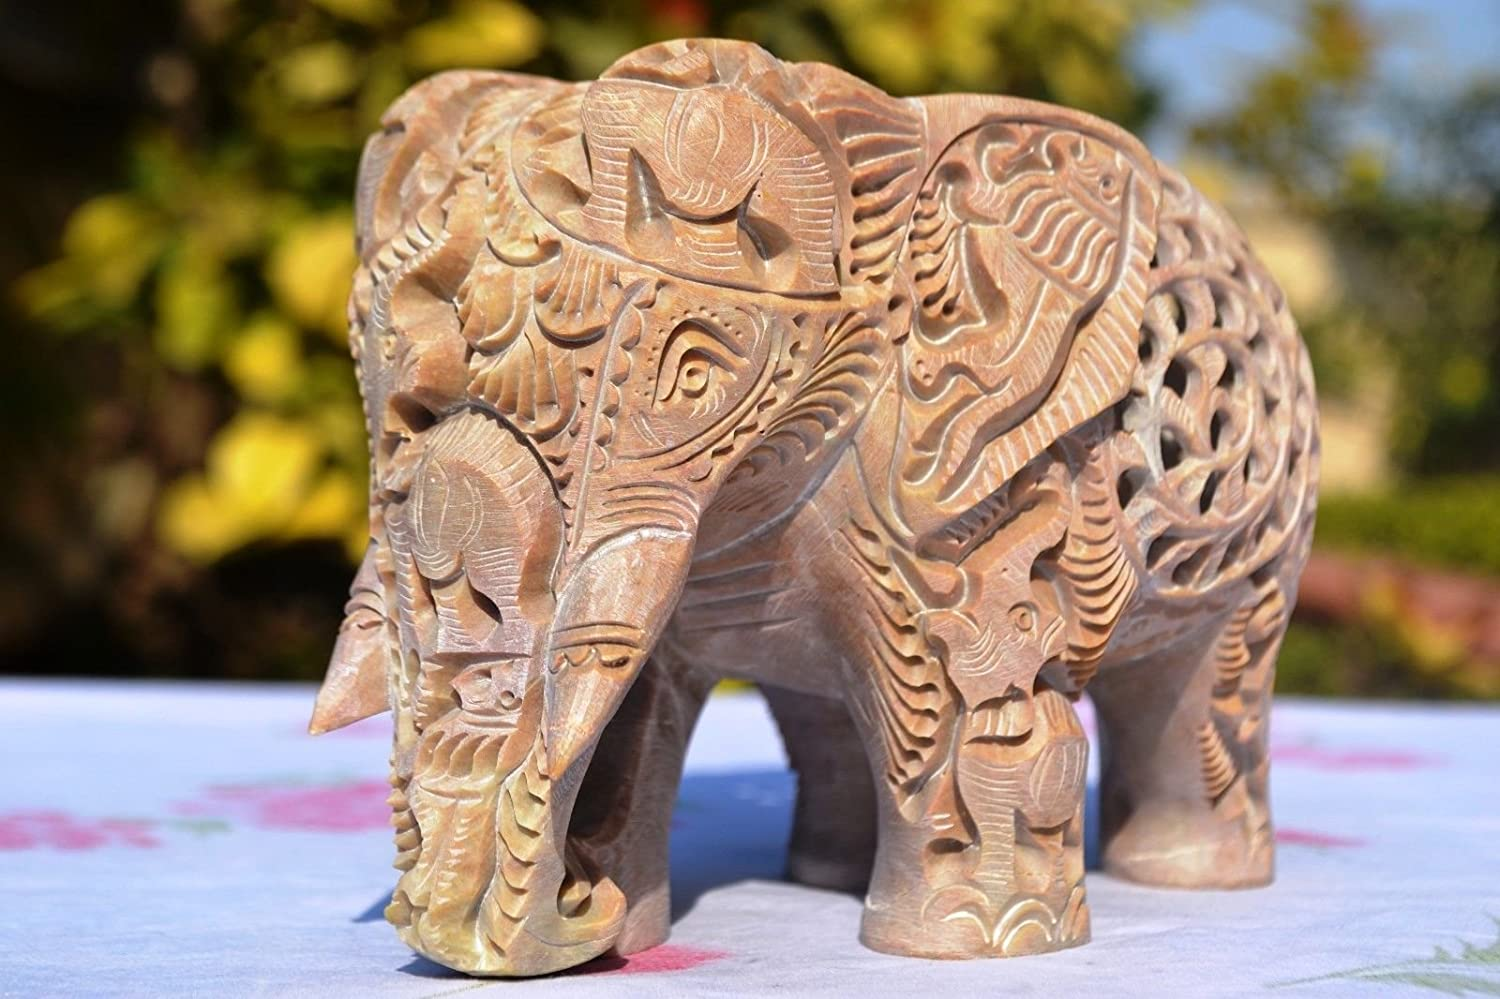 Craftvatikas 8 Large Elephant Figurines Soapstone Elephant Hand Carving Carved Elephant Sculpture with Another Elephant Inside Lucky